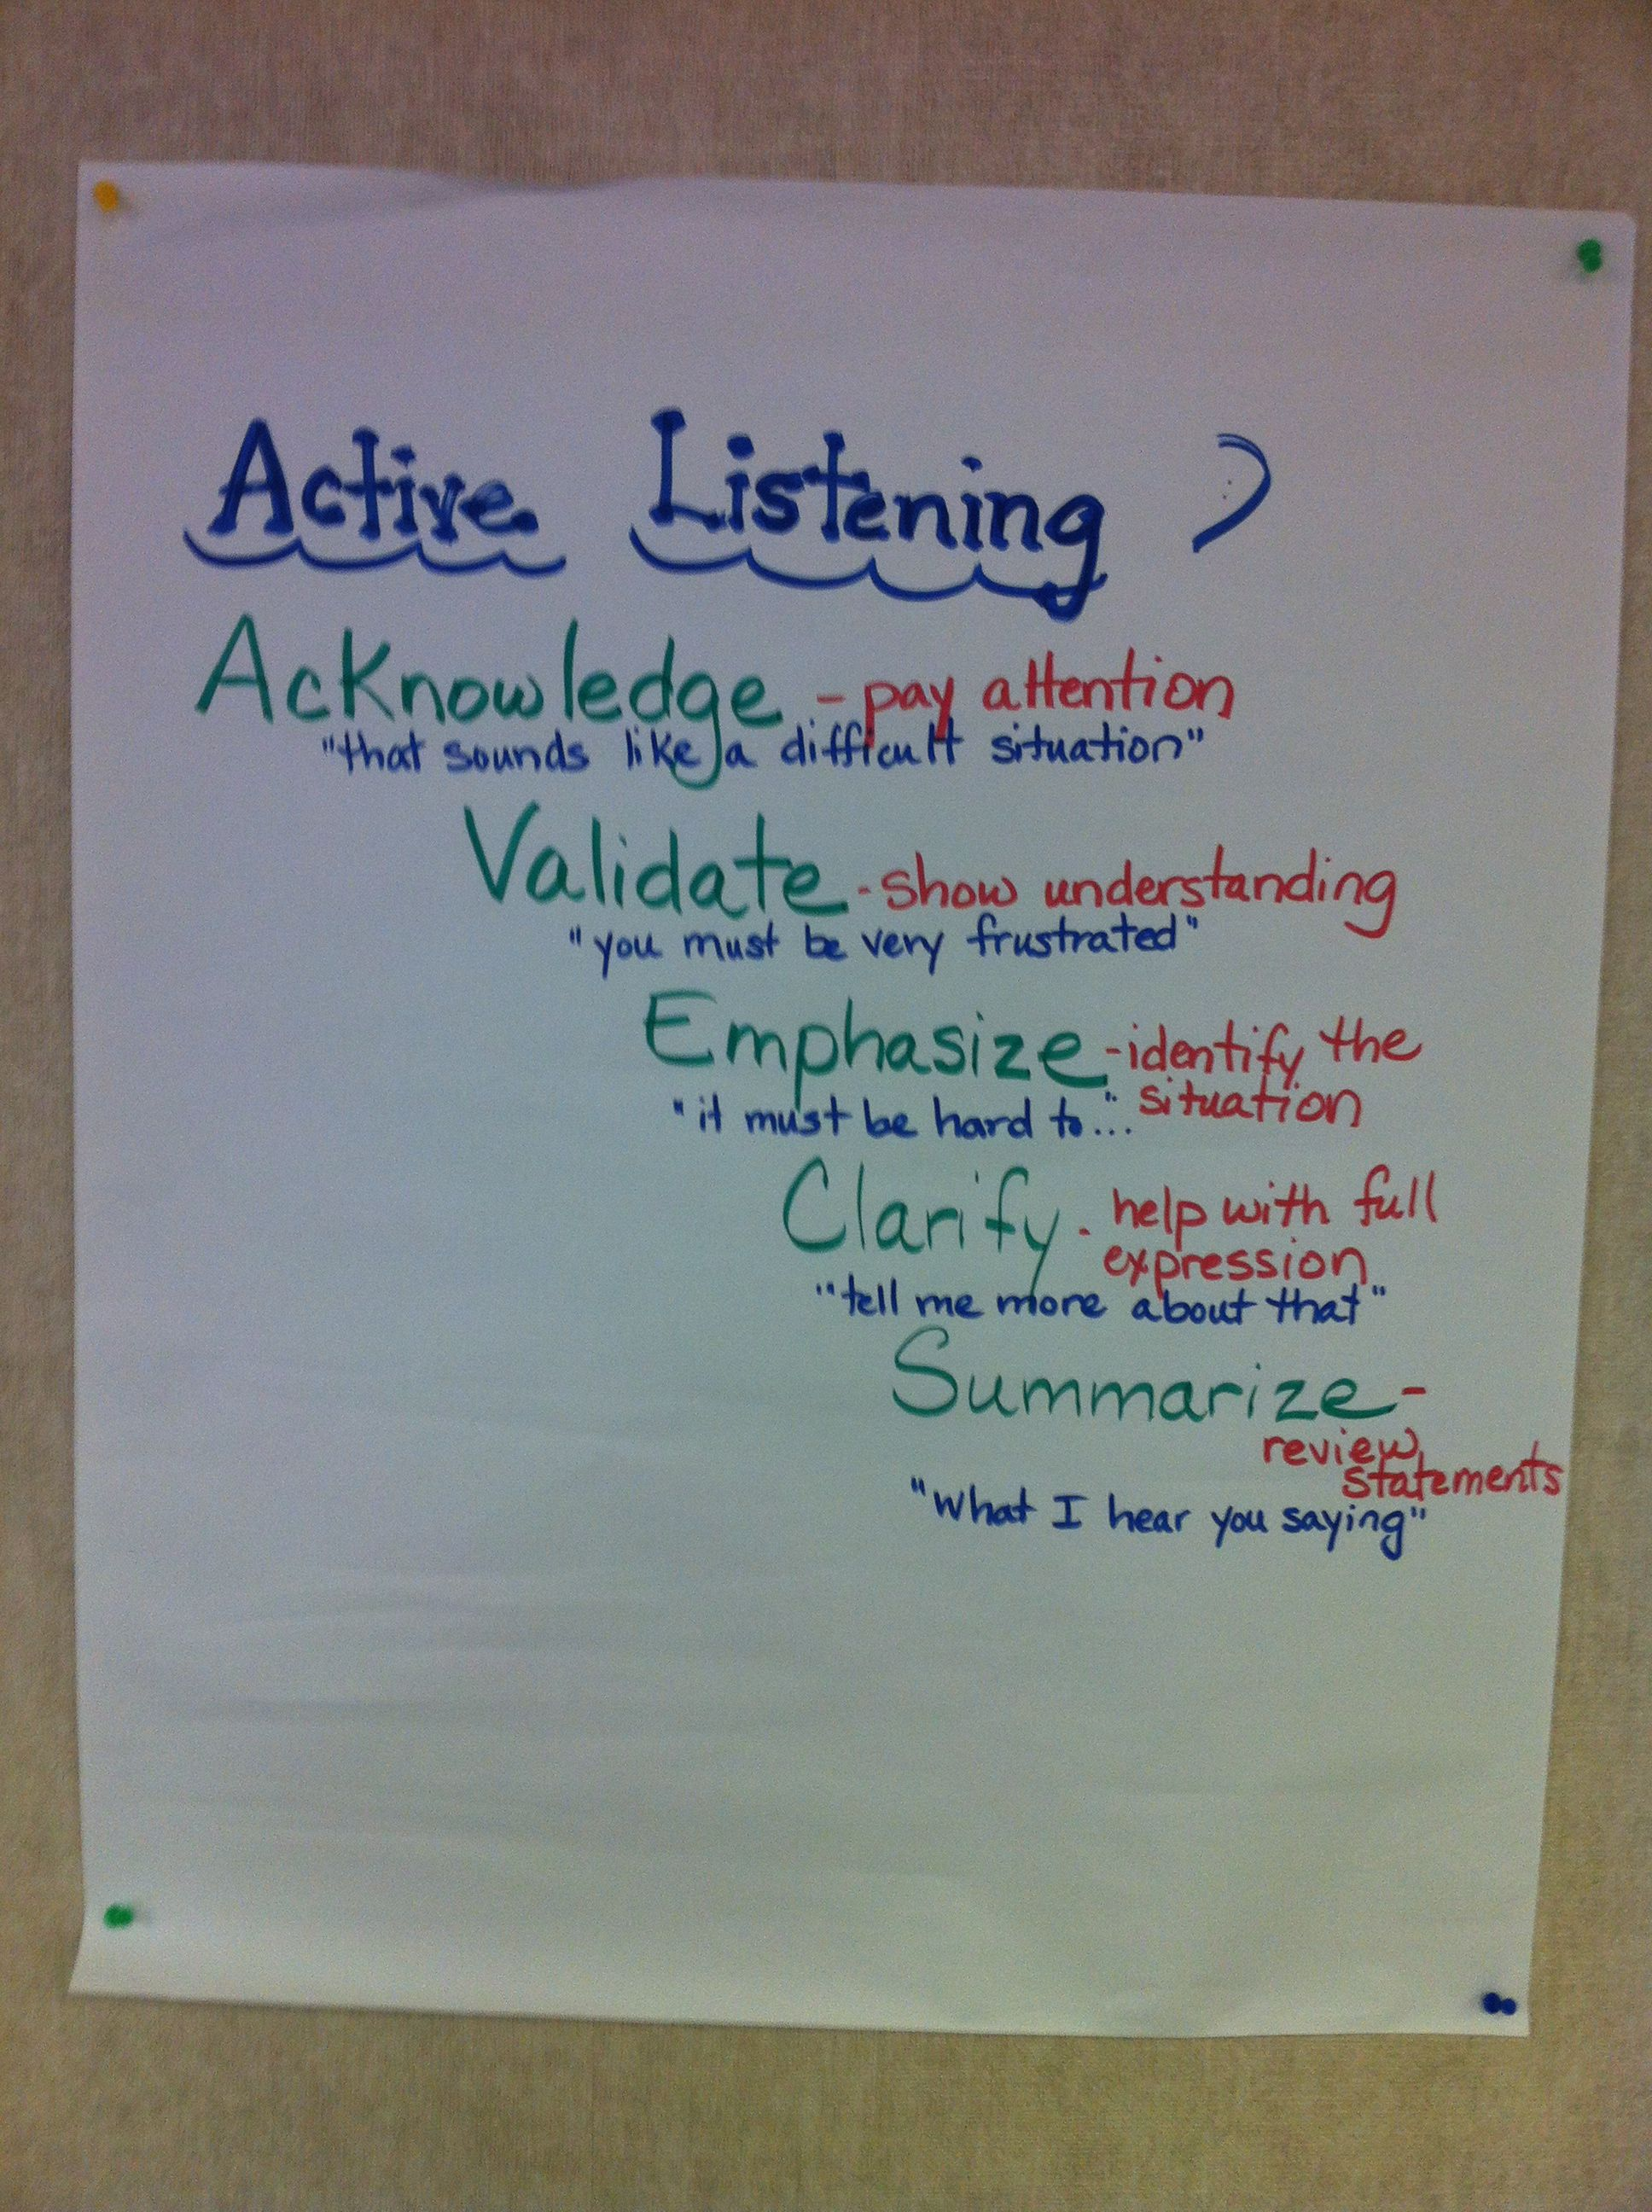 The process of active listening by all the team members during an IEP.